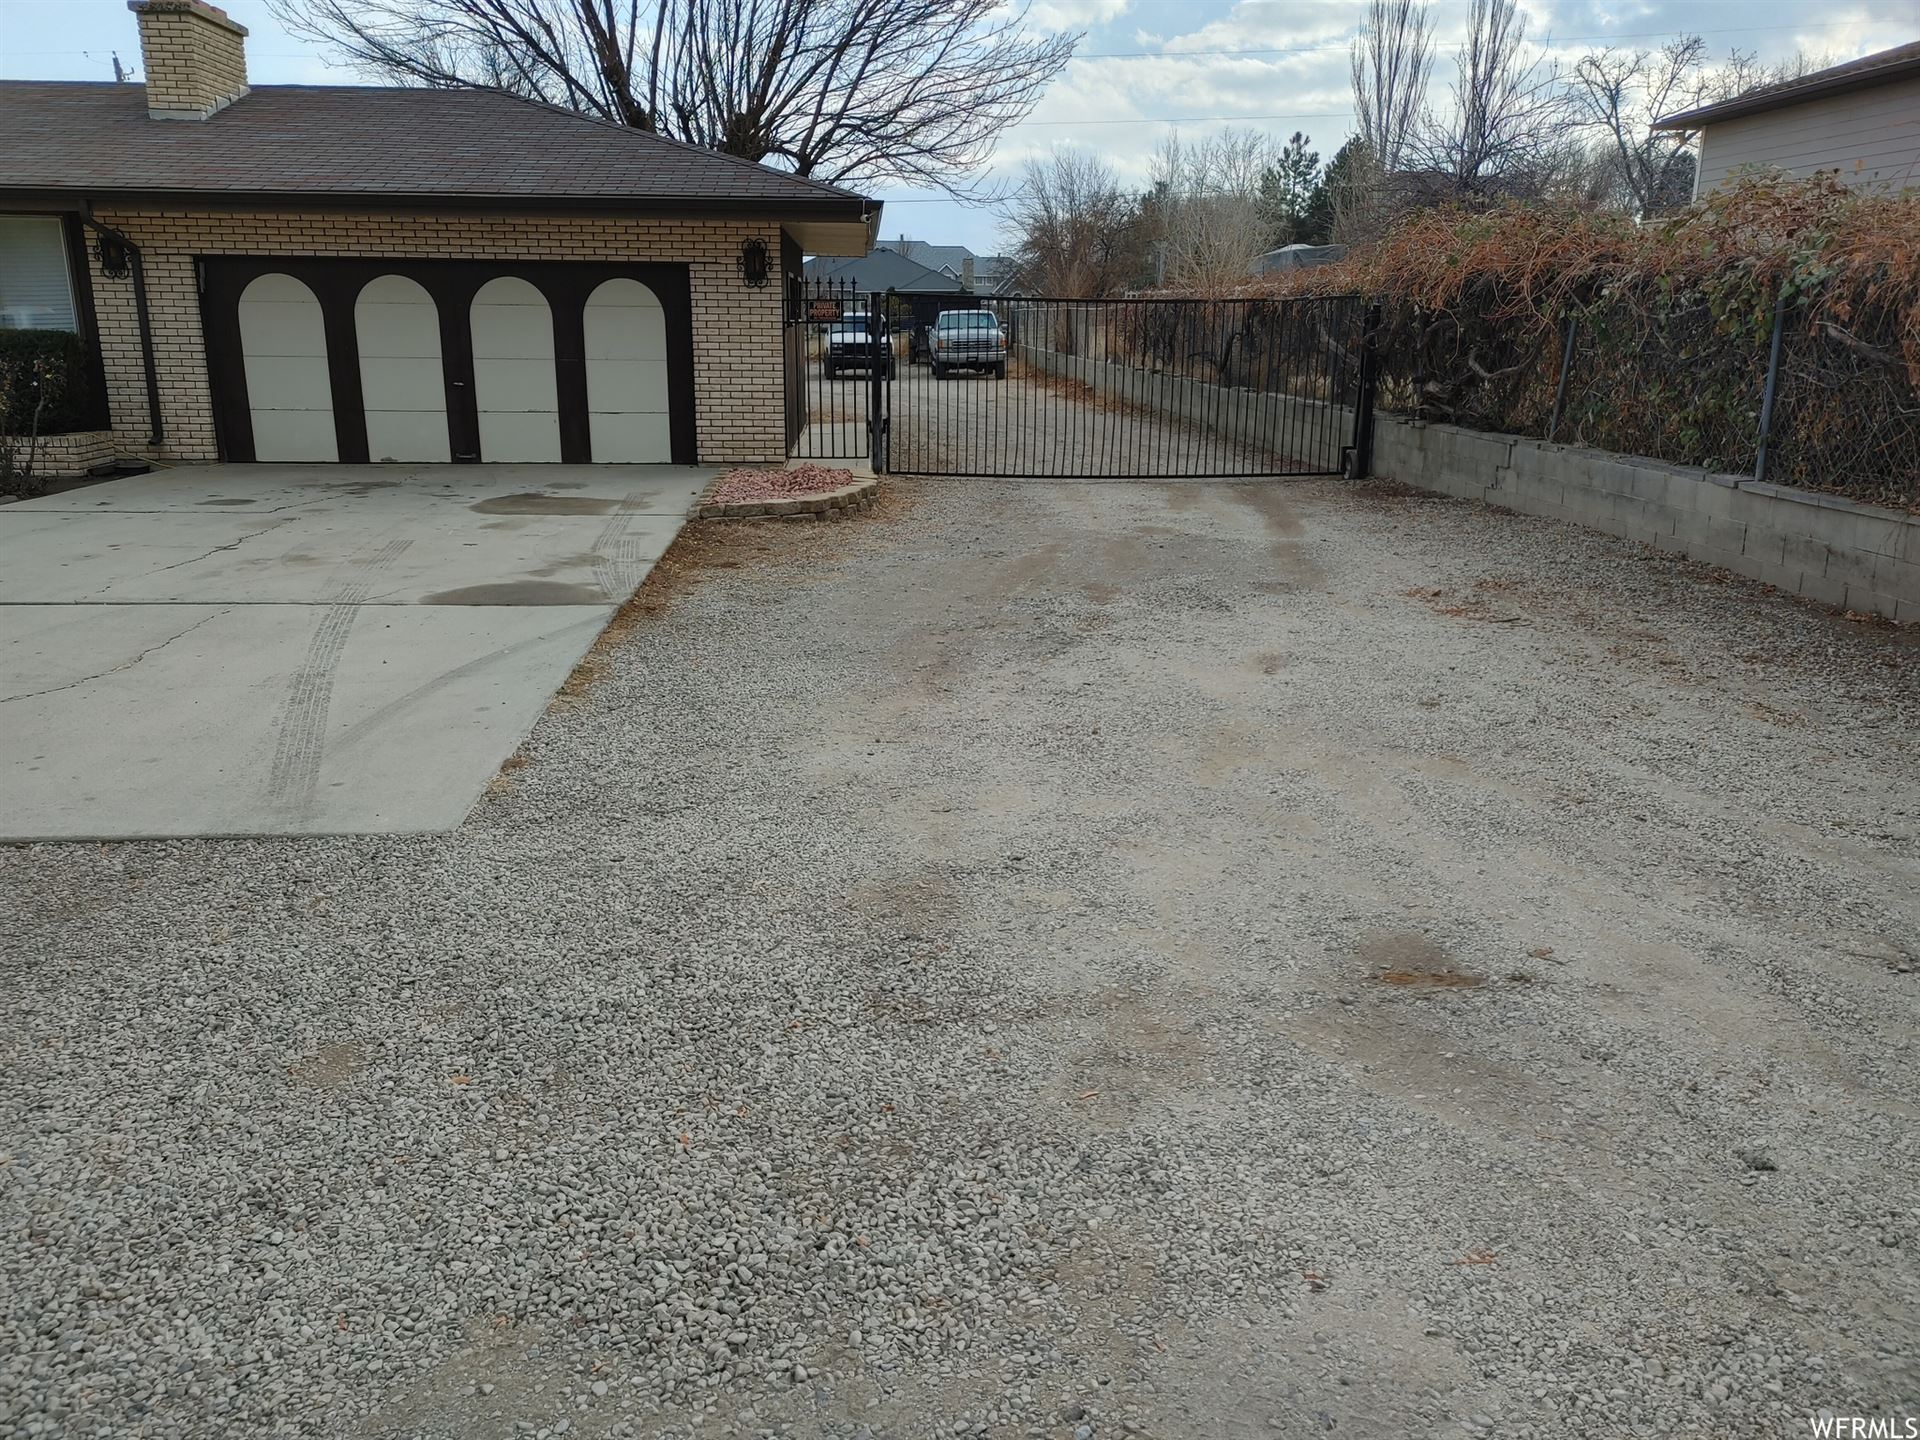 Photo of 2869 W 10460 S, South Jordan, UT 84095 (MLS # 1716267)